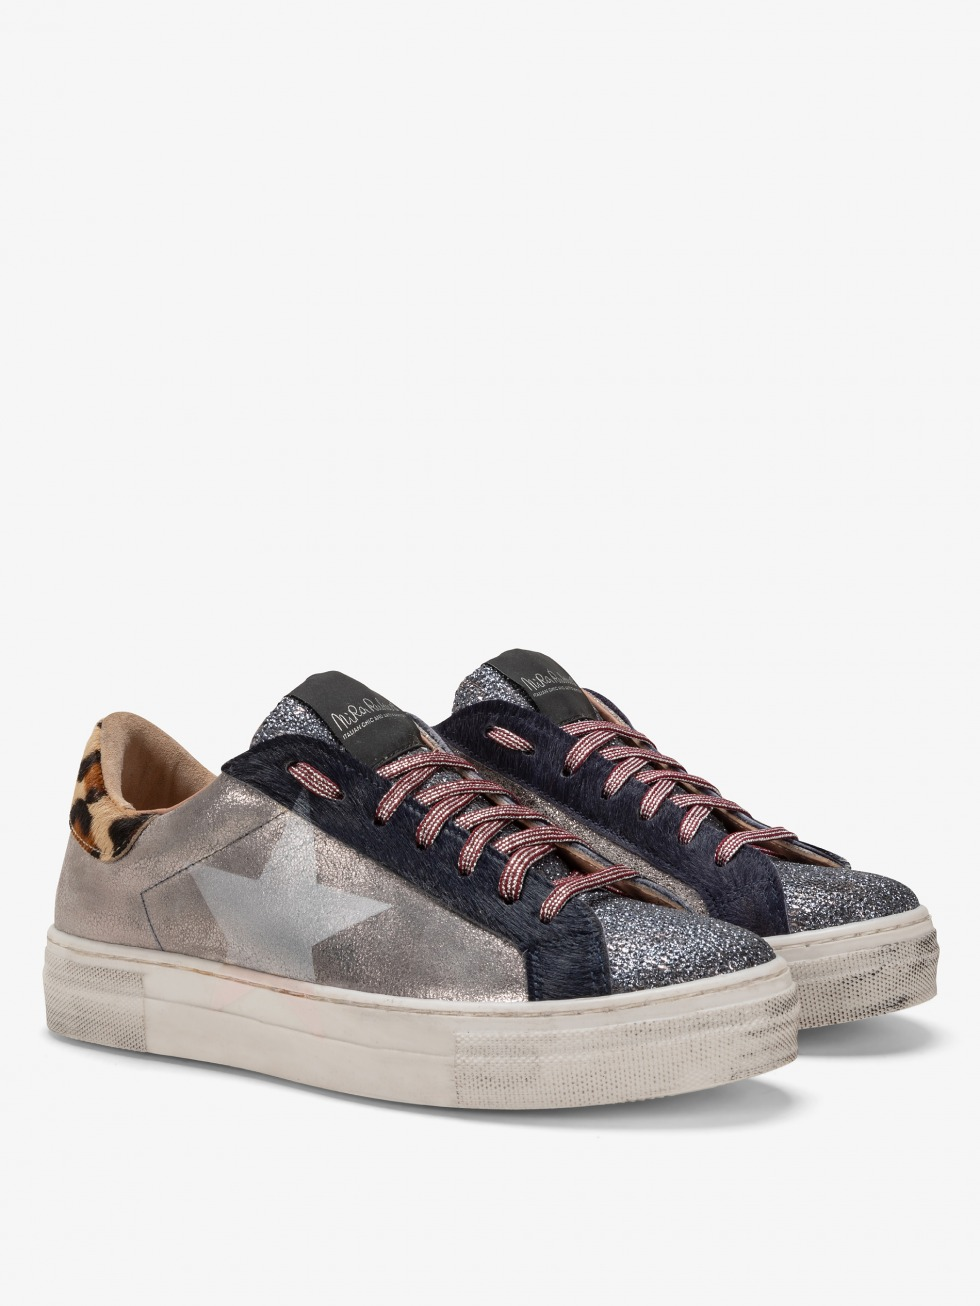 Martini Cielo Club Sneakers - Mother Of Pearl Star